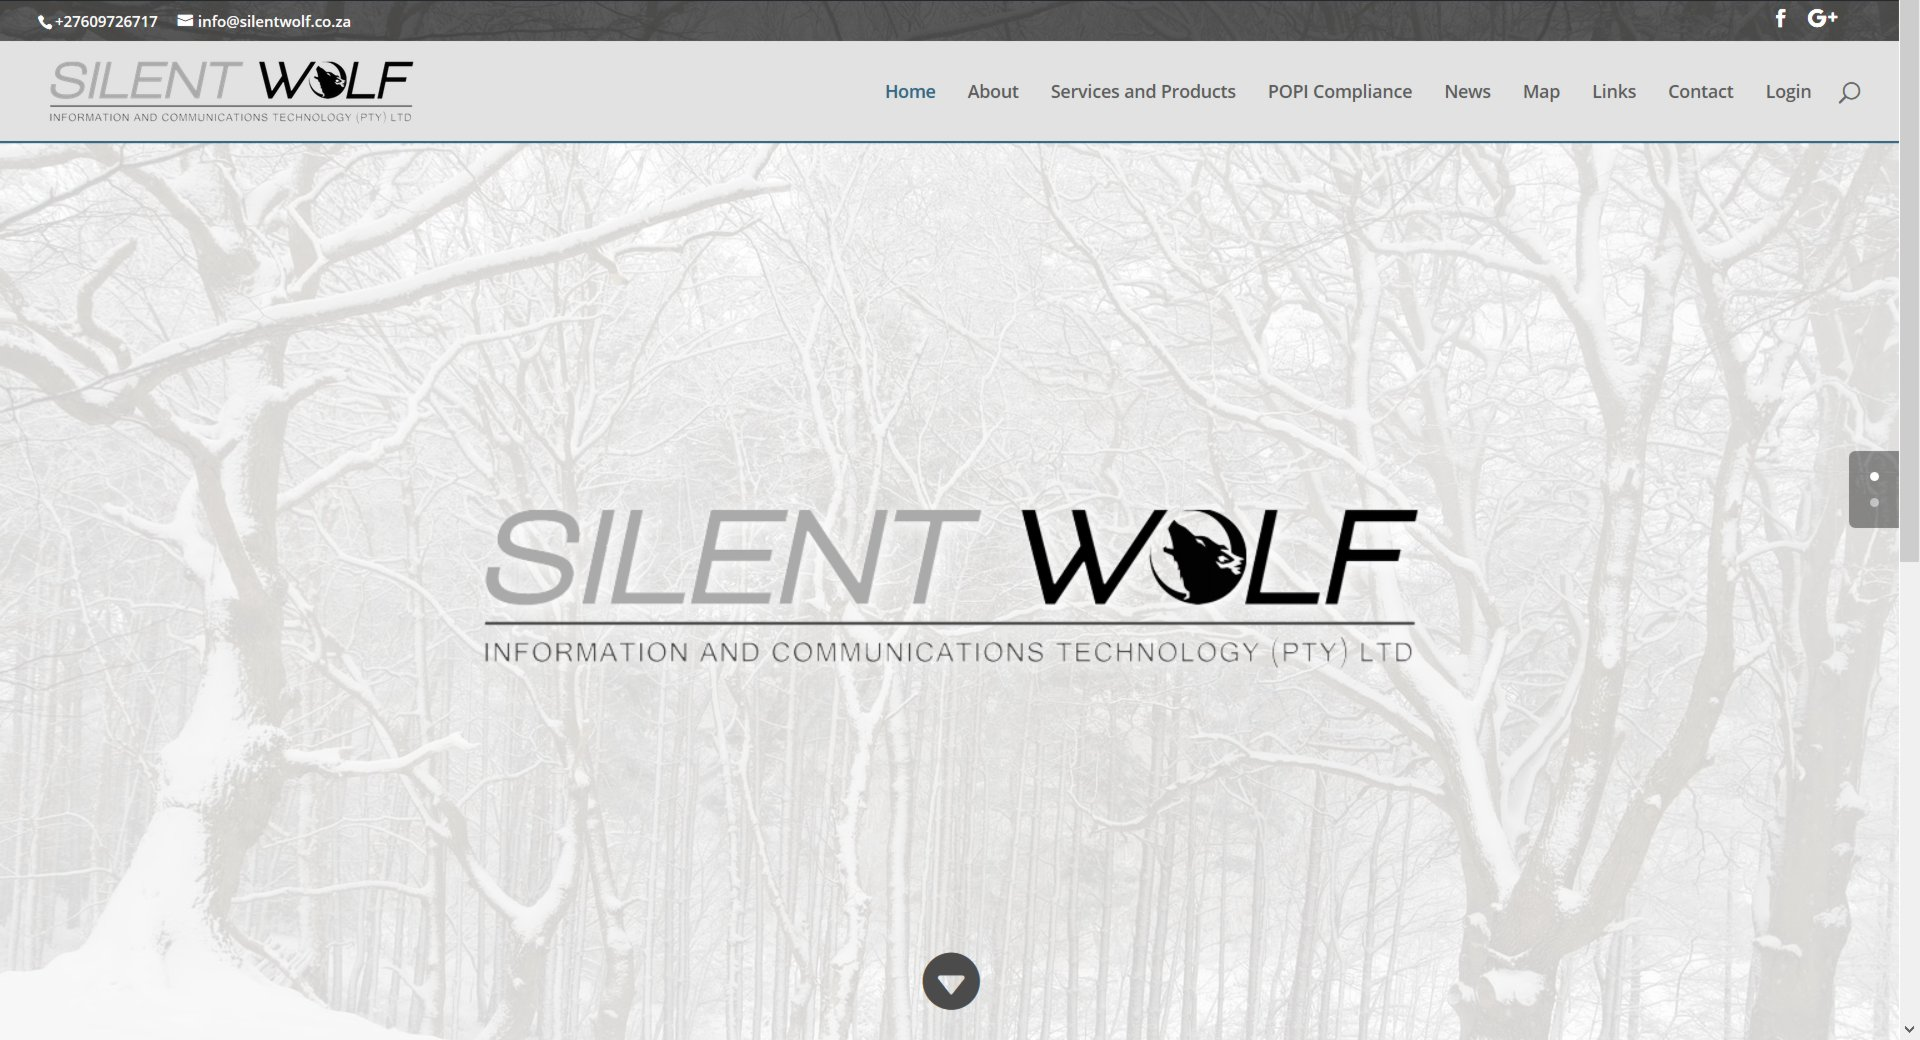 SILENT WOLF INFORMATION AND COMMUNICATIONS TECHNOLOGY in Potchefstroom